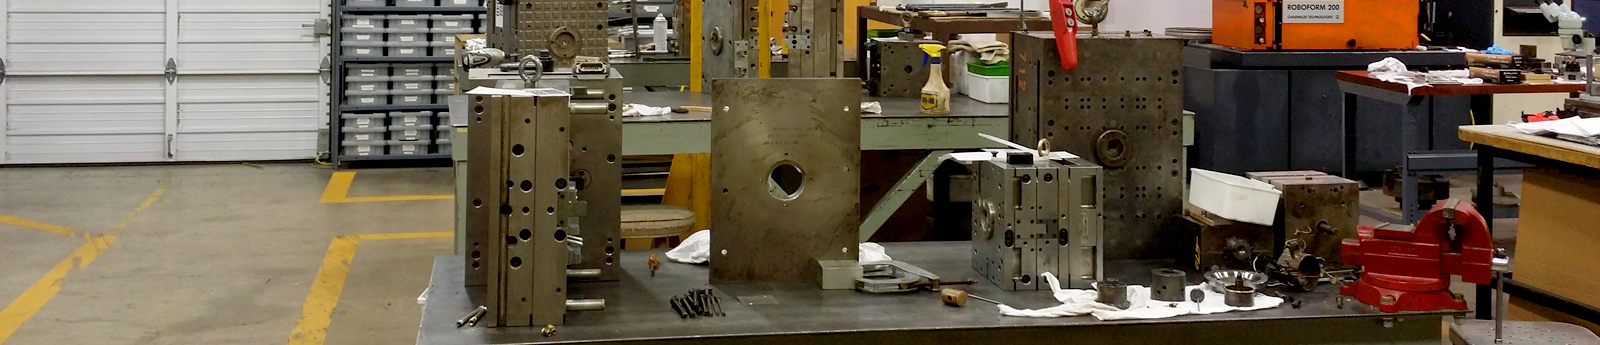 Tooling and Machining Facility for Mold Repair and Maintenance